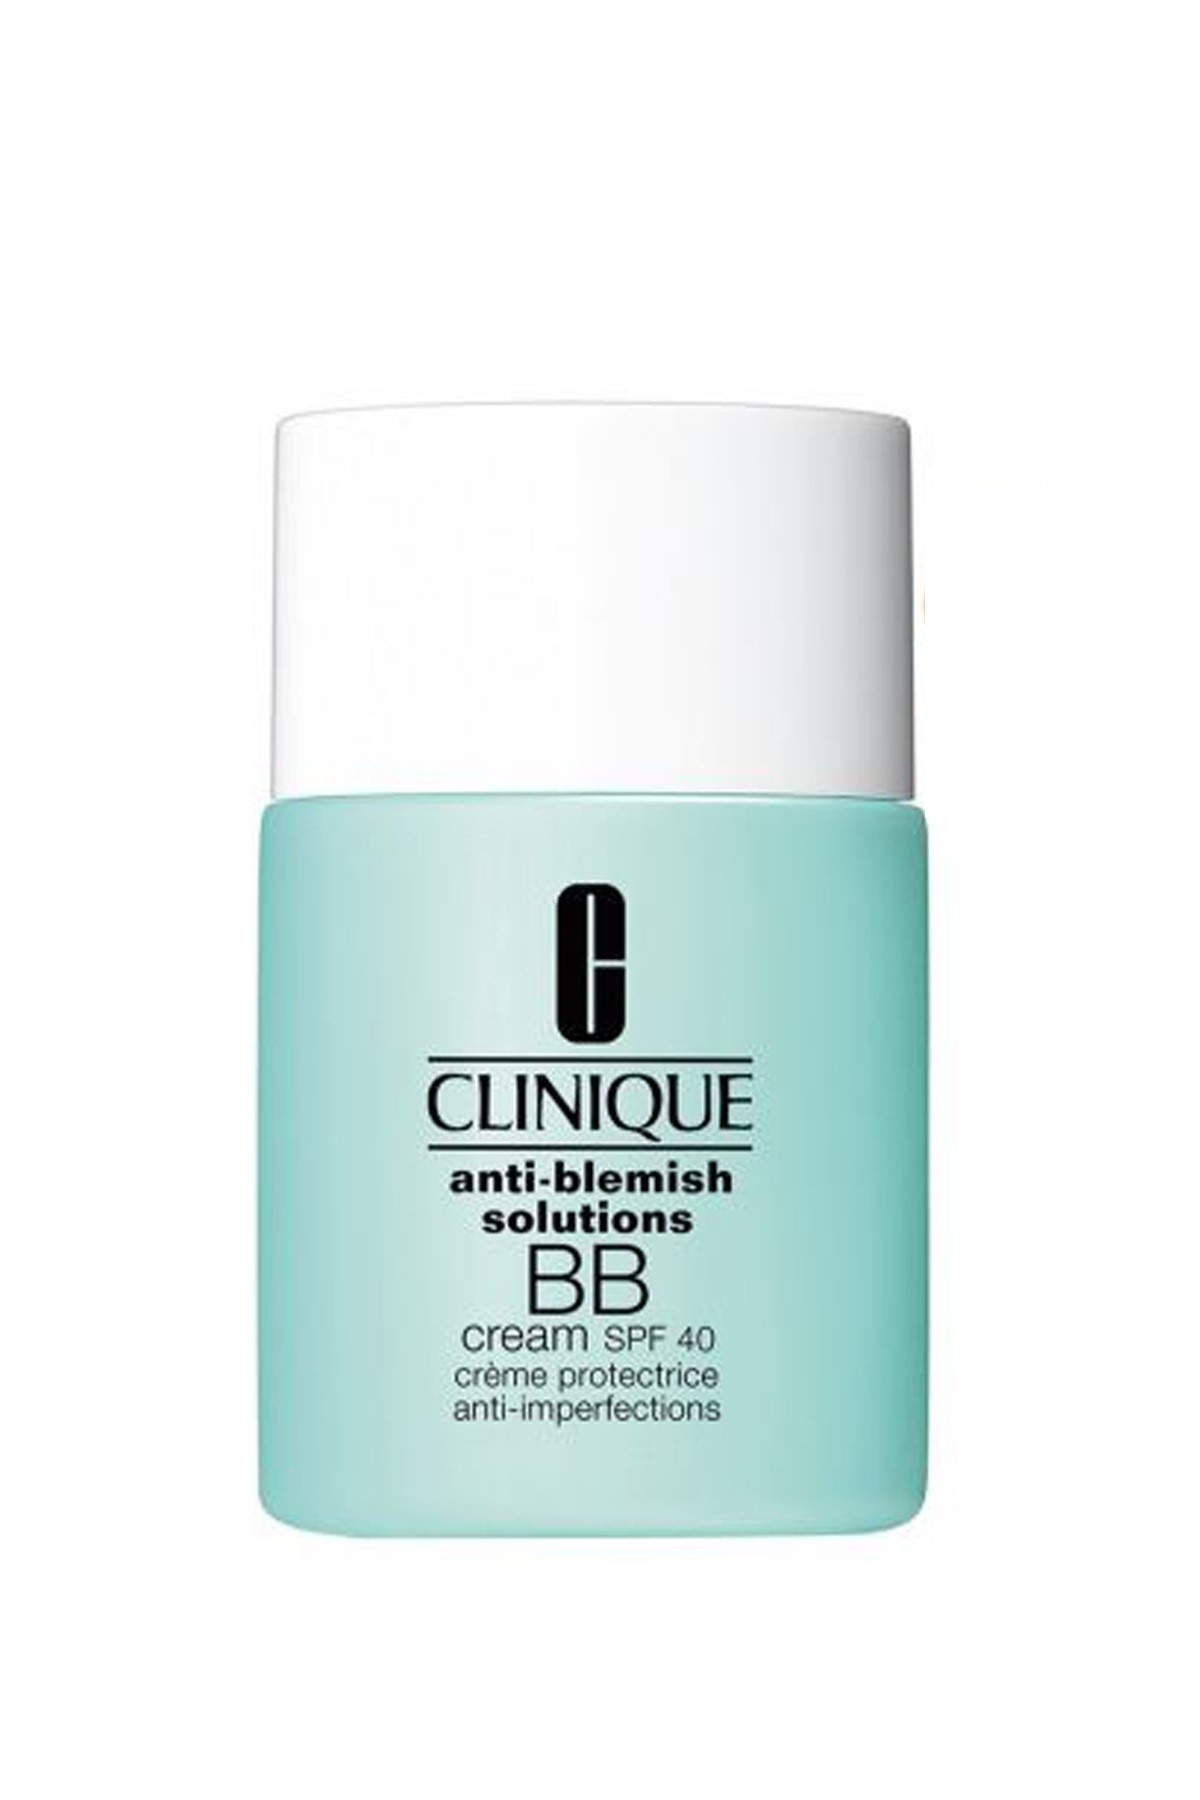 Clinique BB Krem - Anti Blemish Solutions BB Cream Spf 40 02 Light Medium 30 ml 020714694647 1